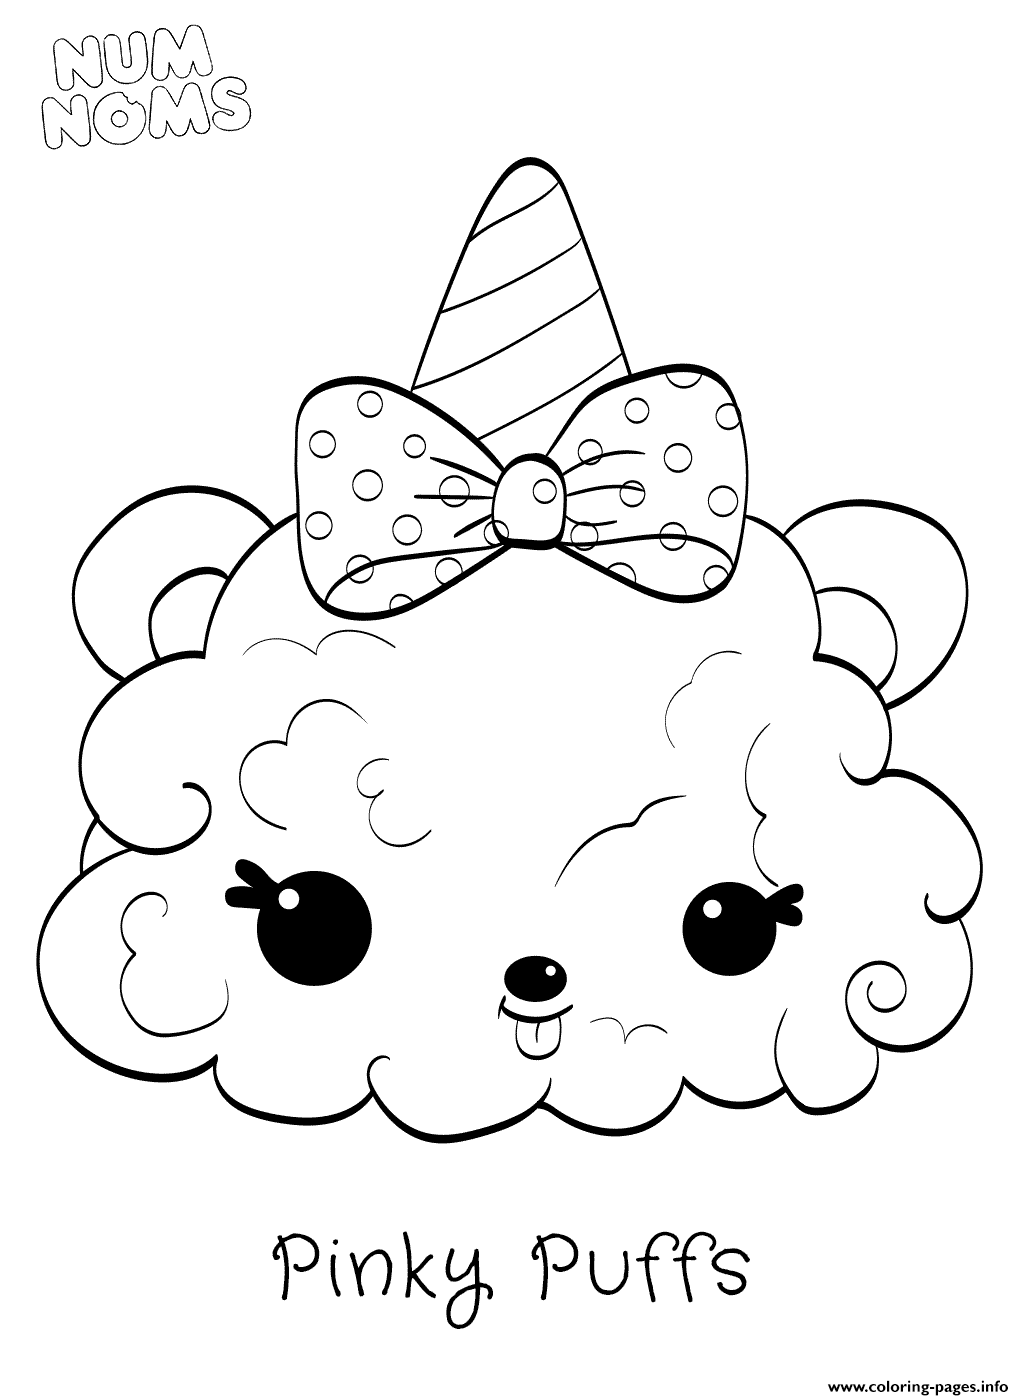 Pinky Puffs From Num Noms Series 2 Coloring Pages Printable